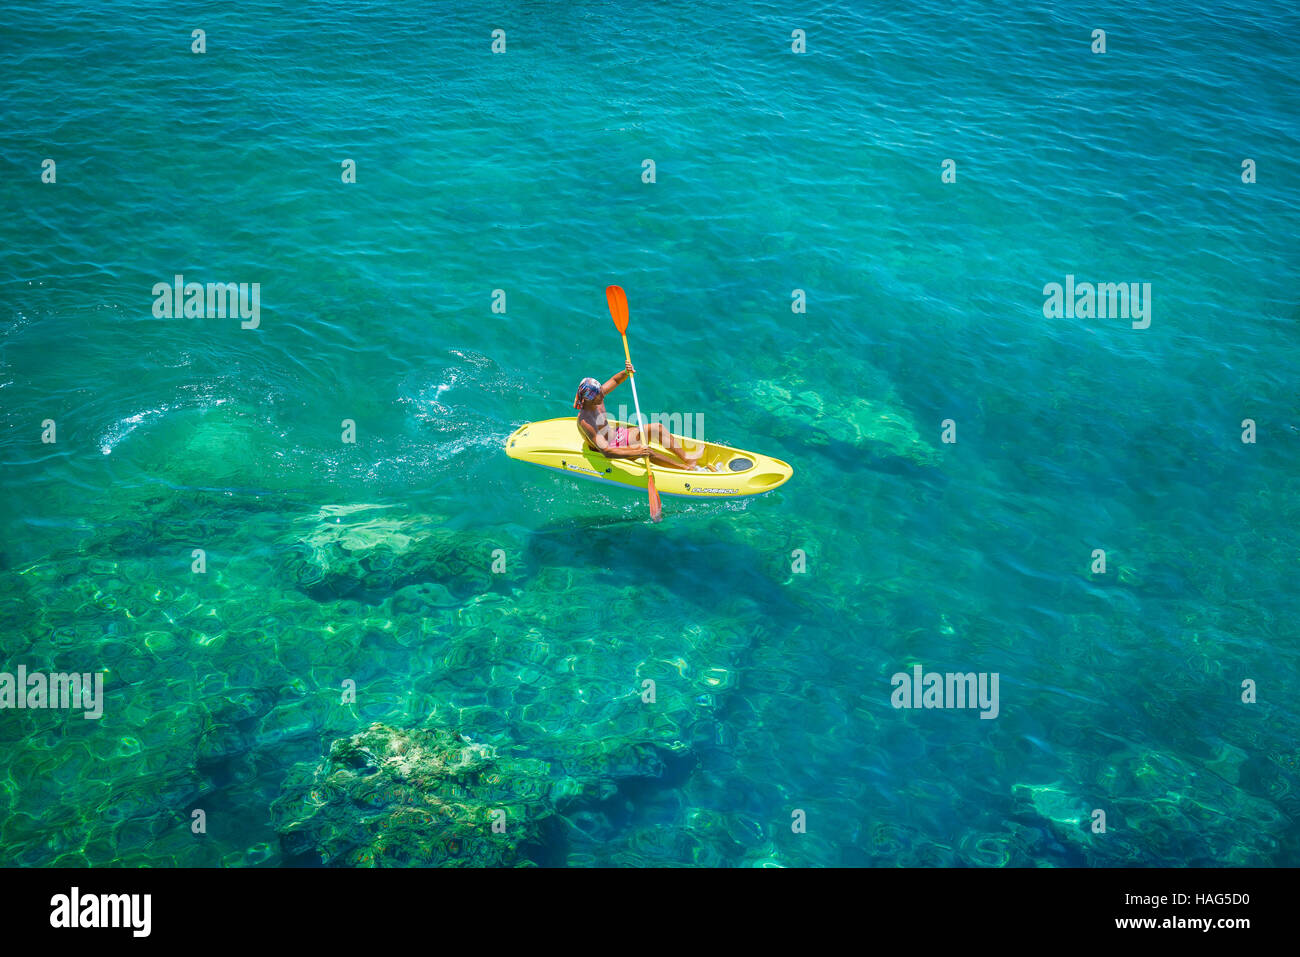 Man canoe sea, view of a man paddling a small yellow canoe across the harbour in Ortigia, Sicily. - Stock Image